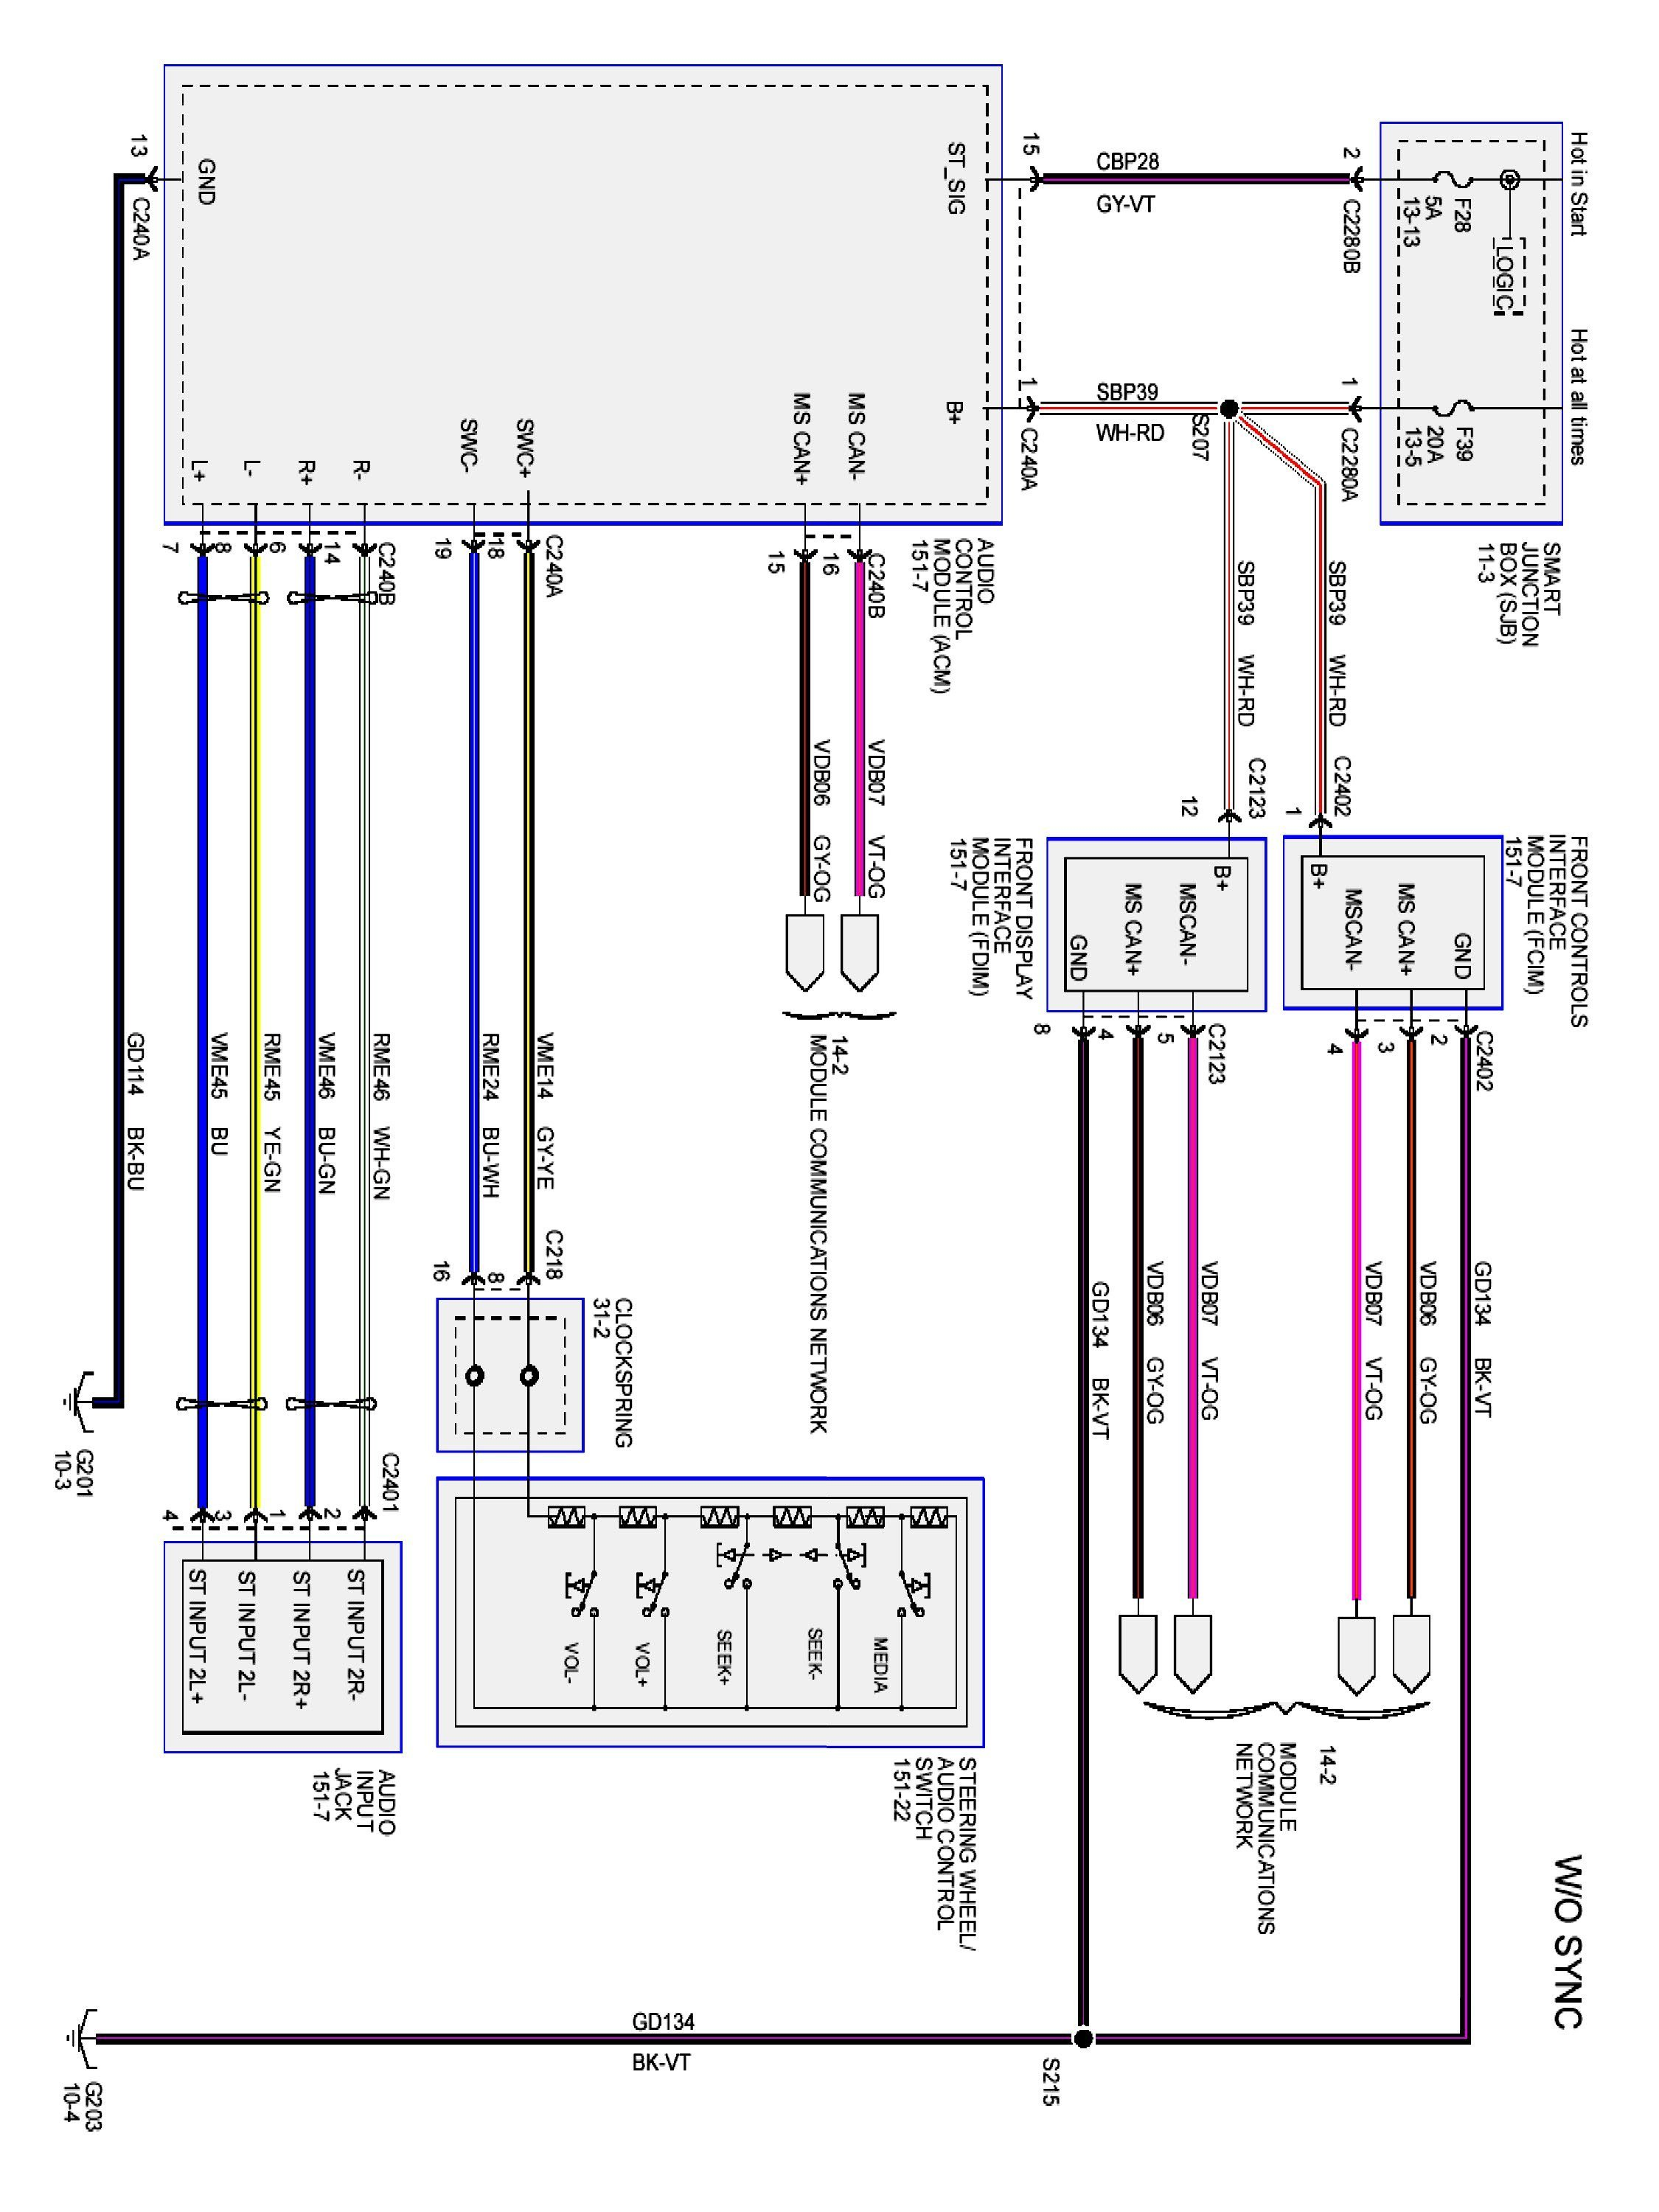 2010 07 16_221430_radio wiring diagram for 2003 ford focus radio readingrat net 2001 ford focus zx3 radio wiring diagram at reclaimingppi.co